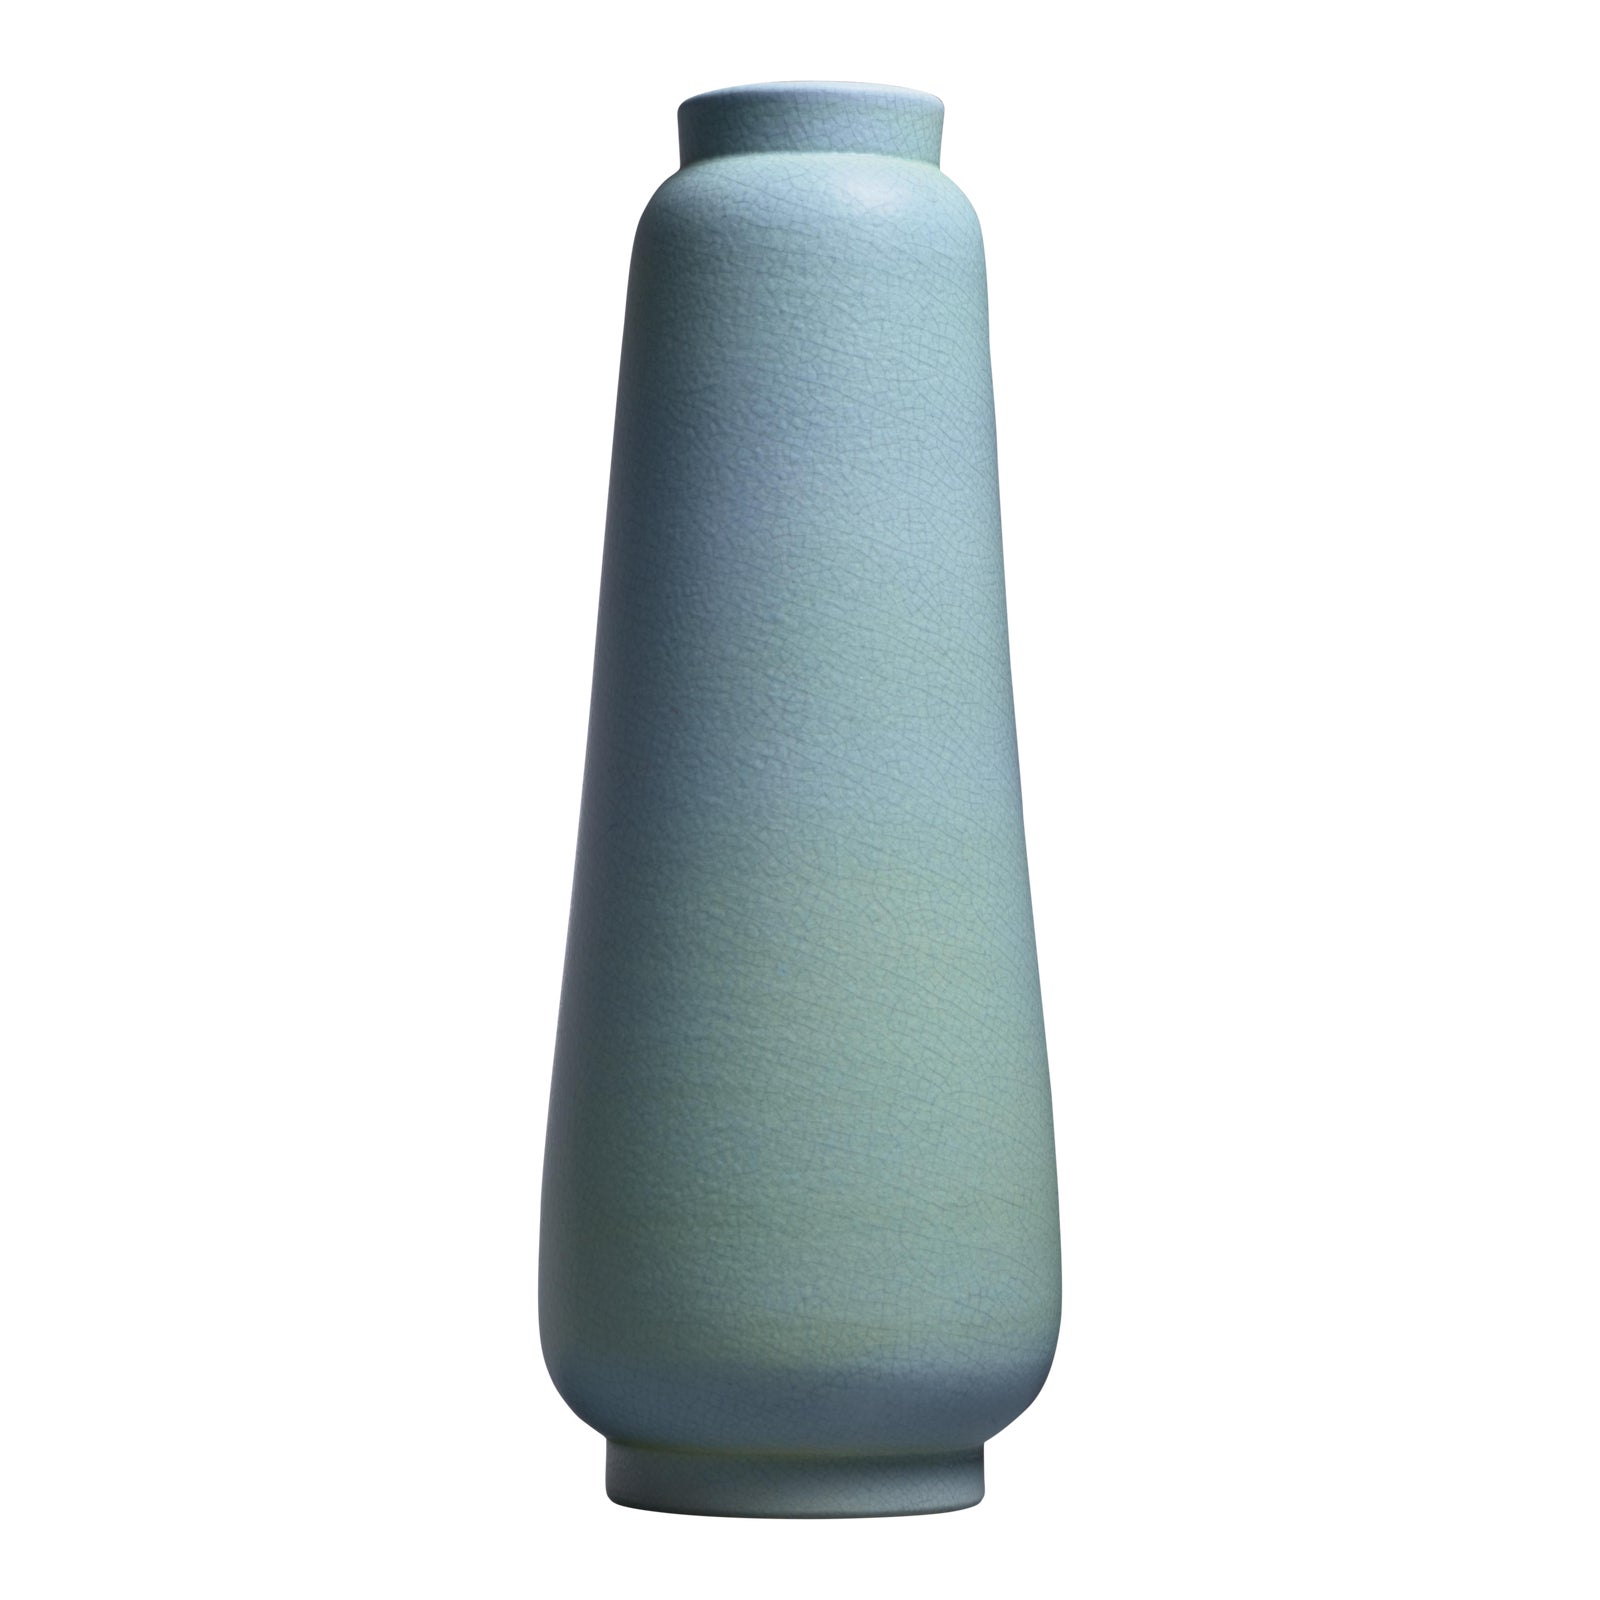 Lovely Ewald Dahlskog Crackle Glaze Floor Vase, Bo Fajans, Sweden,